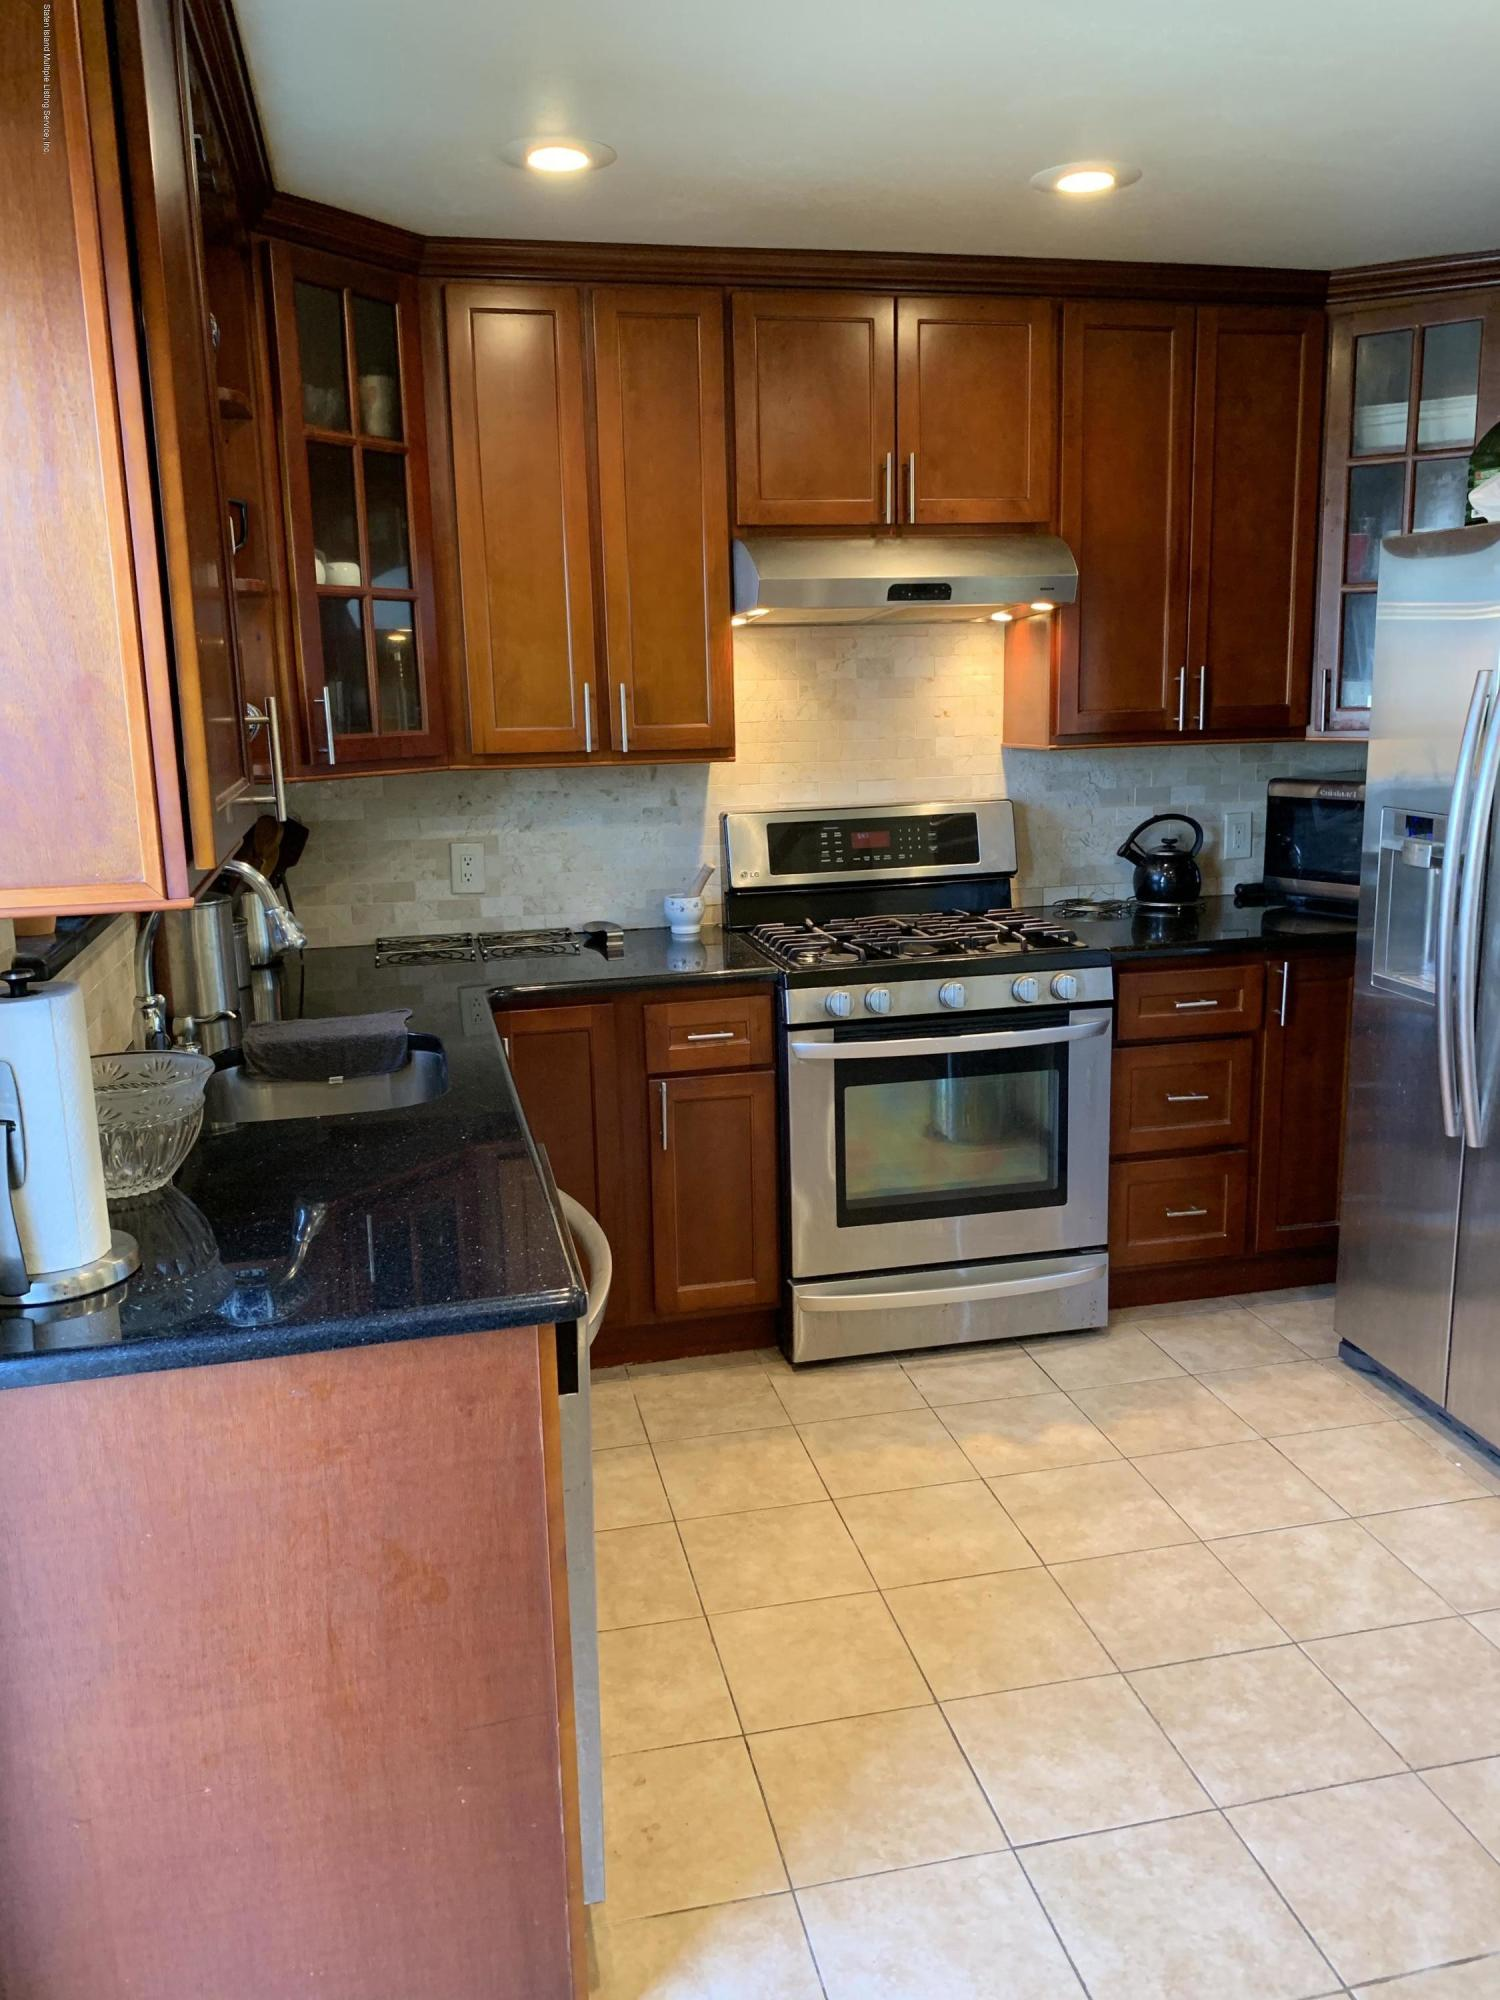 67 Tone Lane,Staten Island,New York,10305,United States,2 Bedrooms Bedrooms,6 Rooms Rooms,3 BathroomsBathrooms,Residential,Tone,1131553